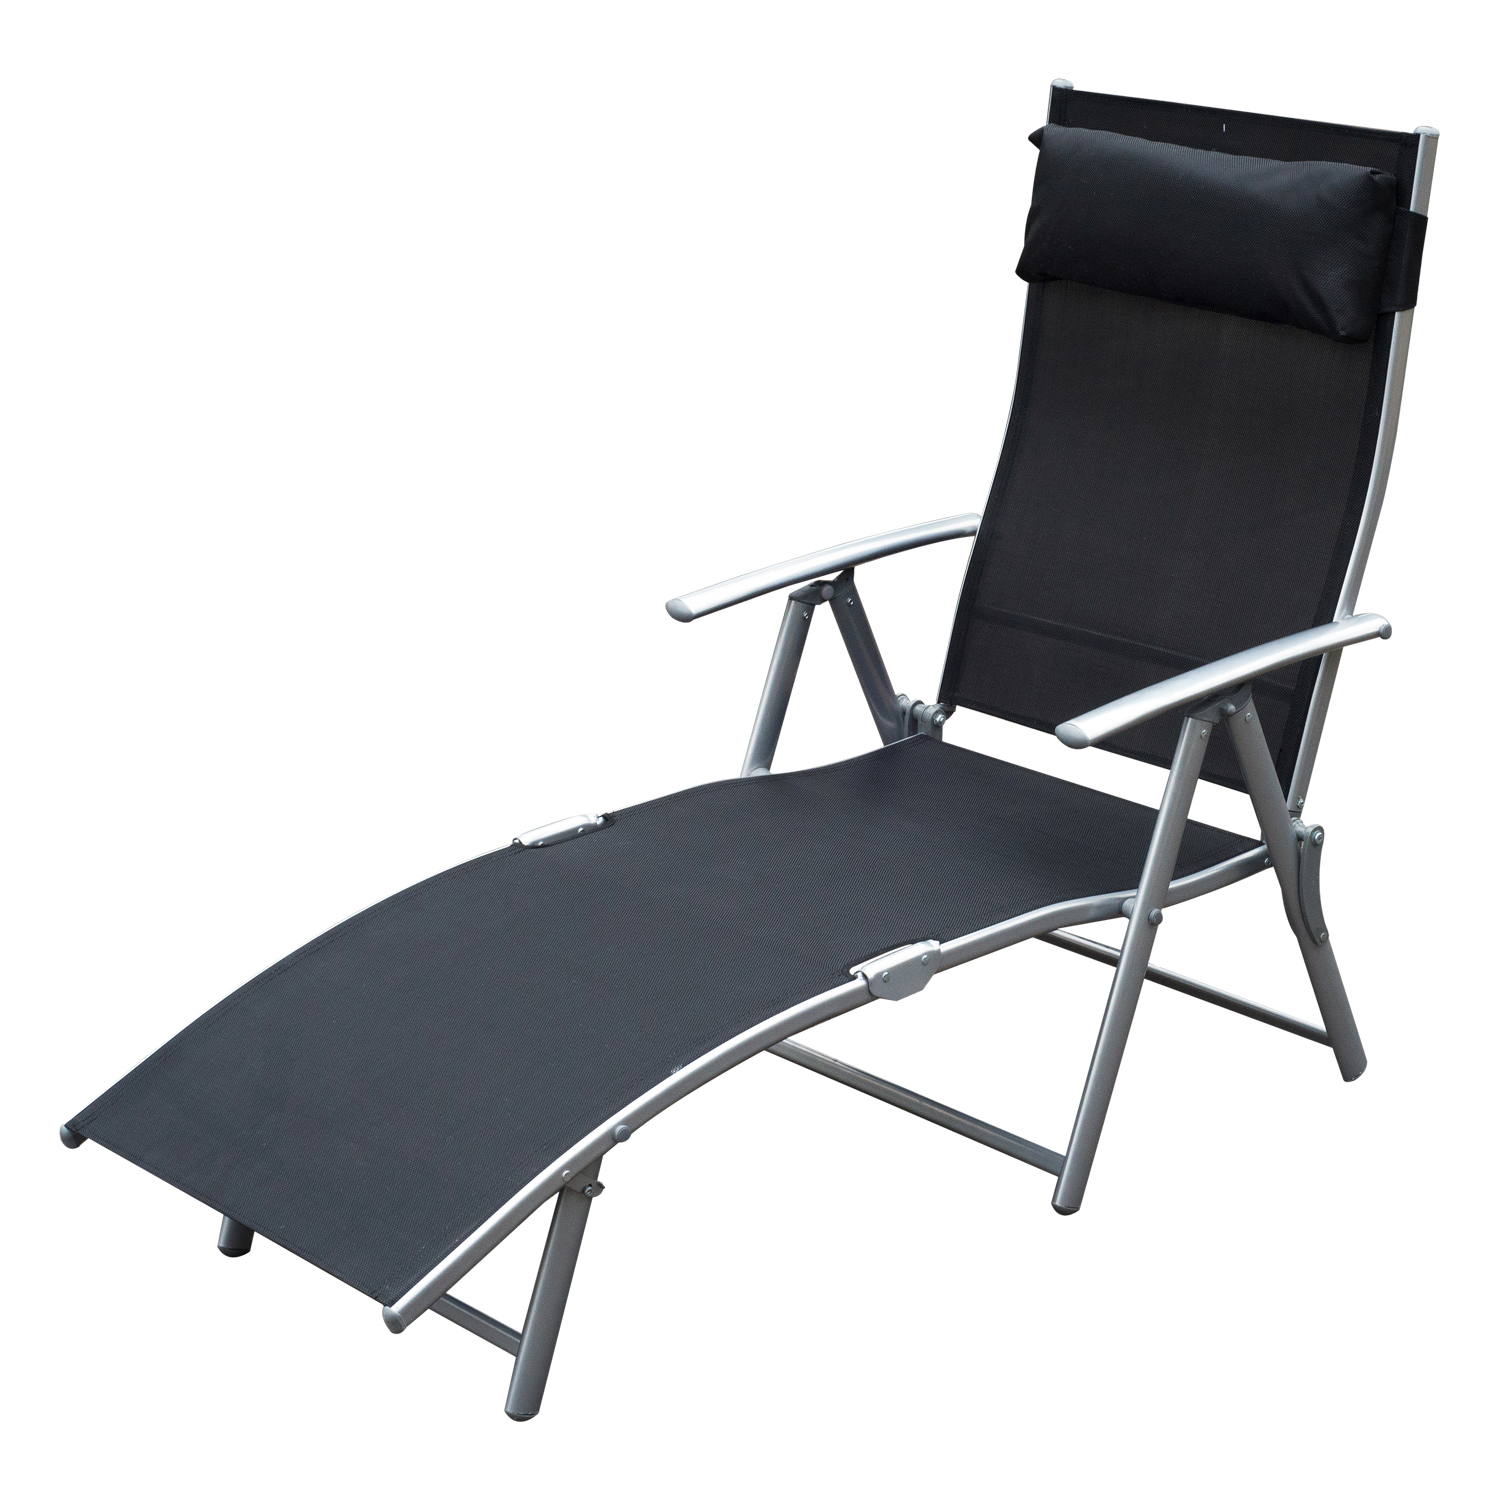 Folding Lounge Chairs Chaise Lounge Chair Folding Pool Beach Yard Adjustable